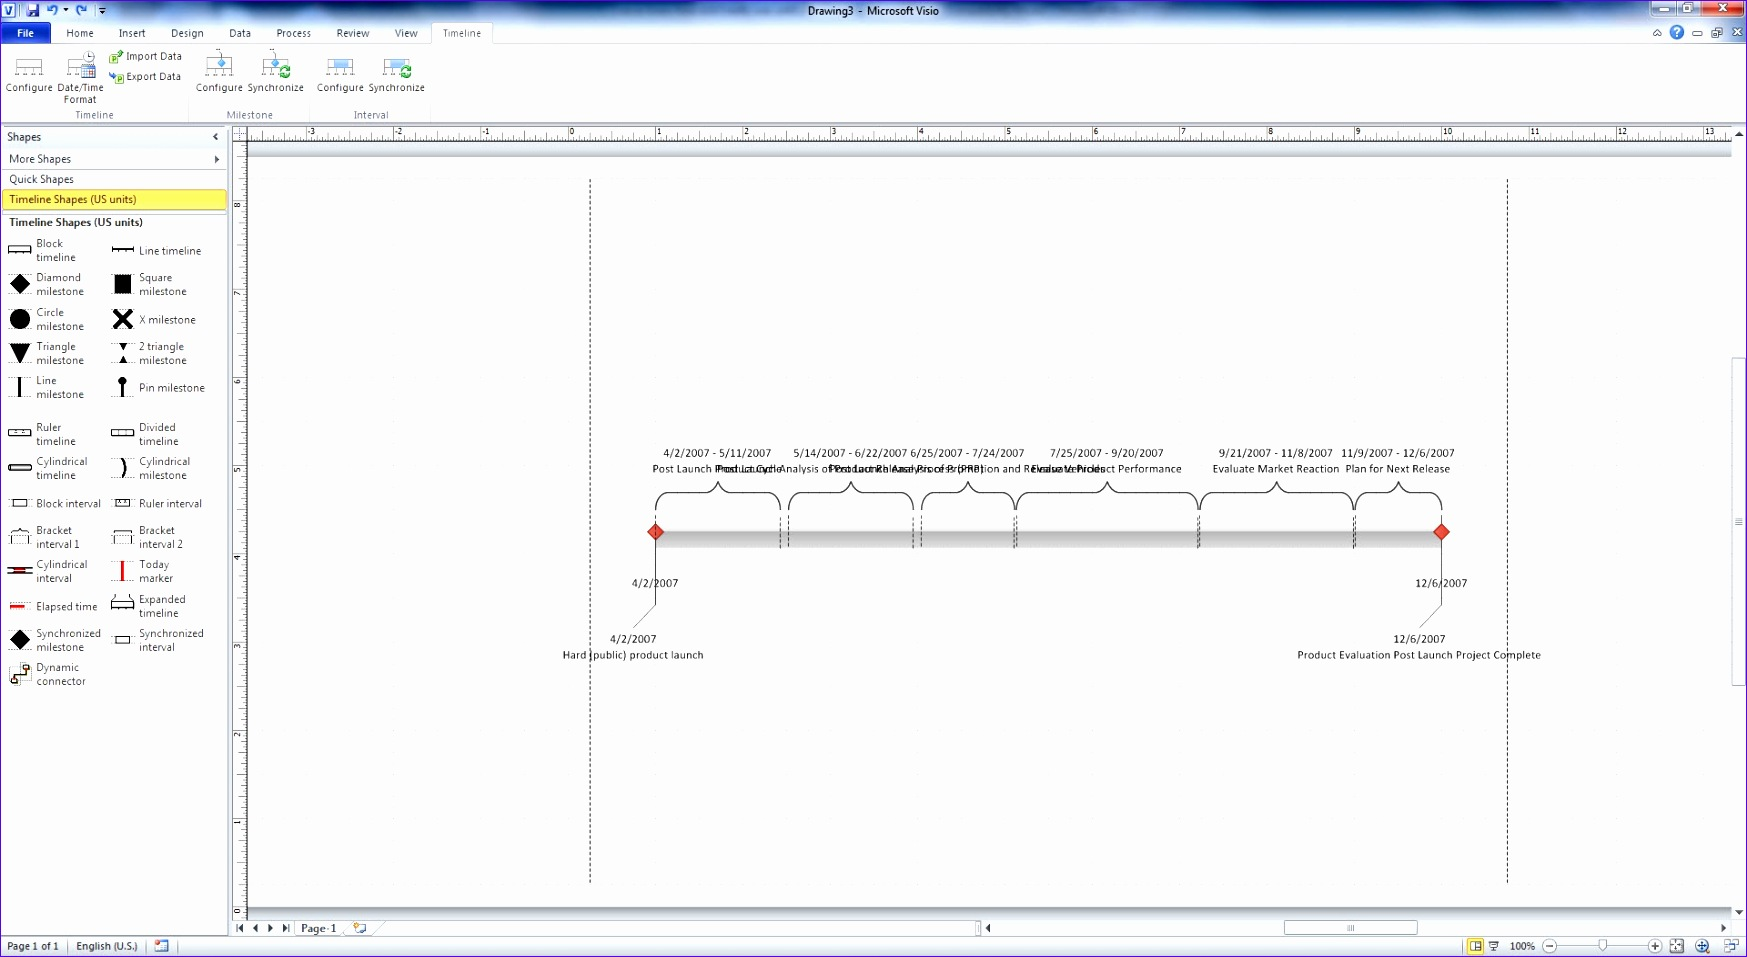 Excel 2007 Timeline Template Otgad Fresh Use Visio 2010 for Visualizing and Presenting Project Schedules